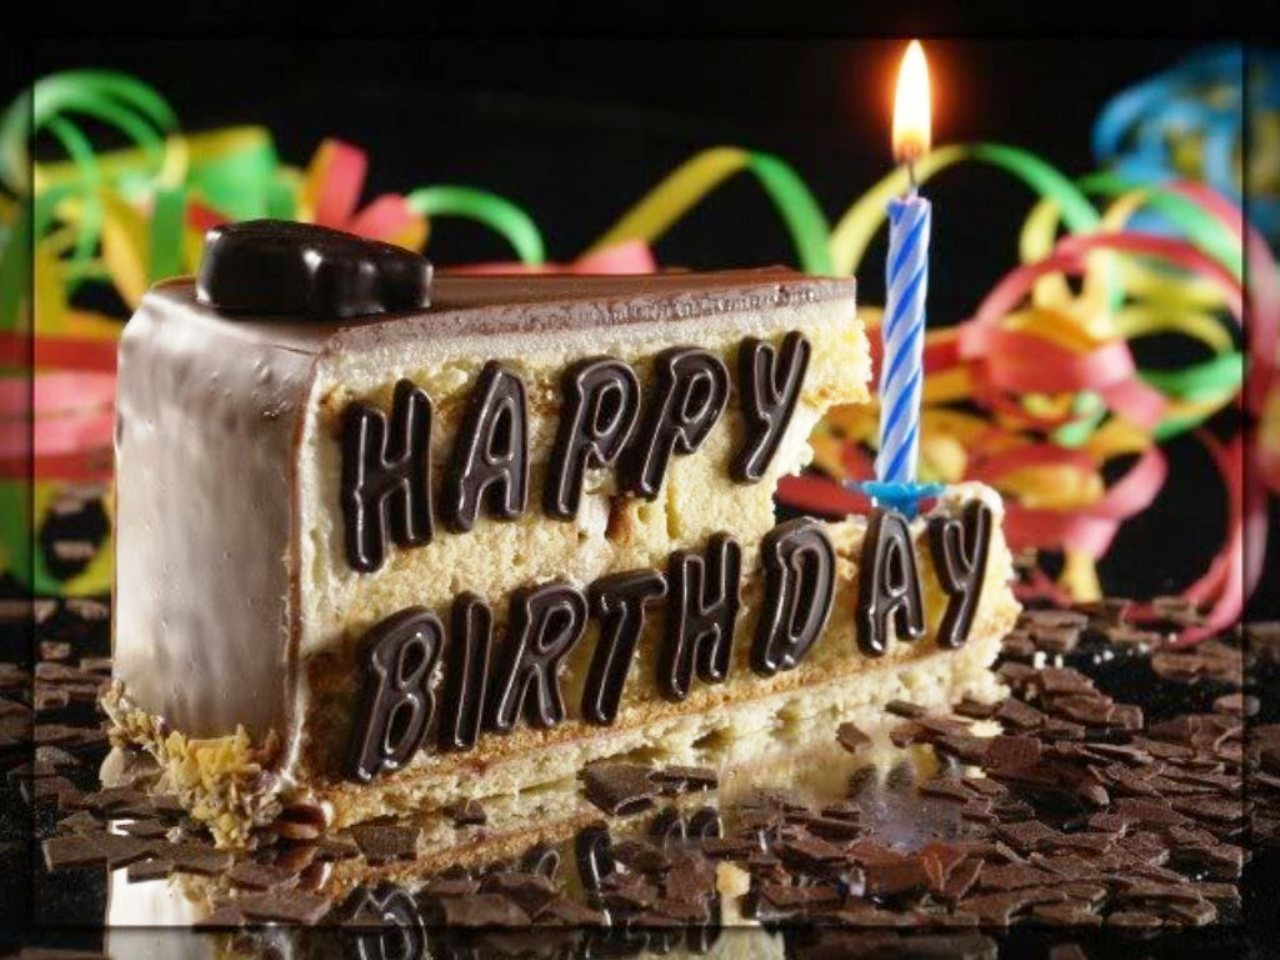 birthday images download hd ; happy-birthday-cake-hd-1